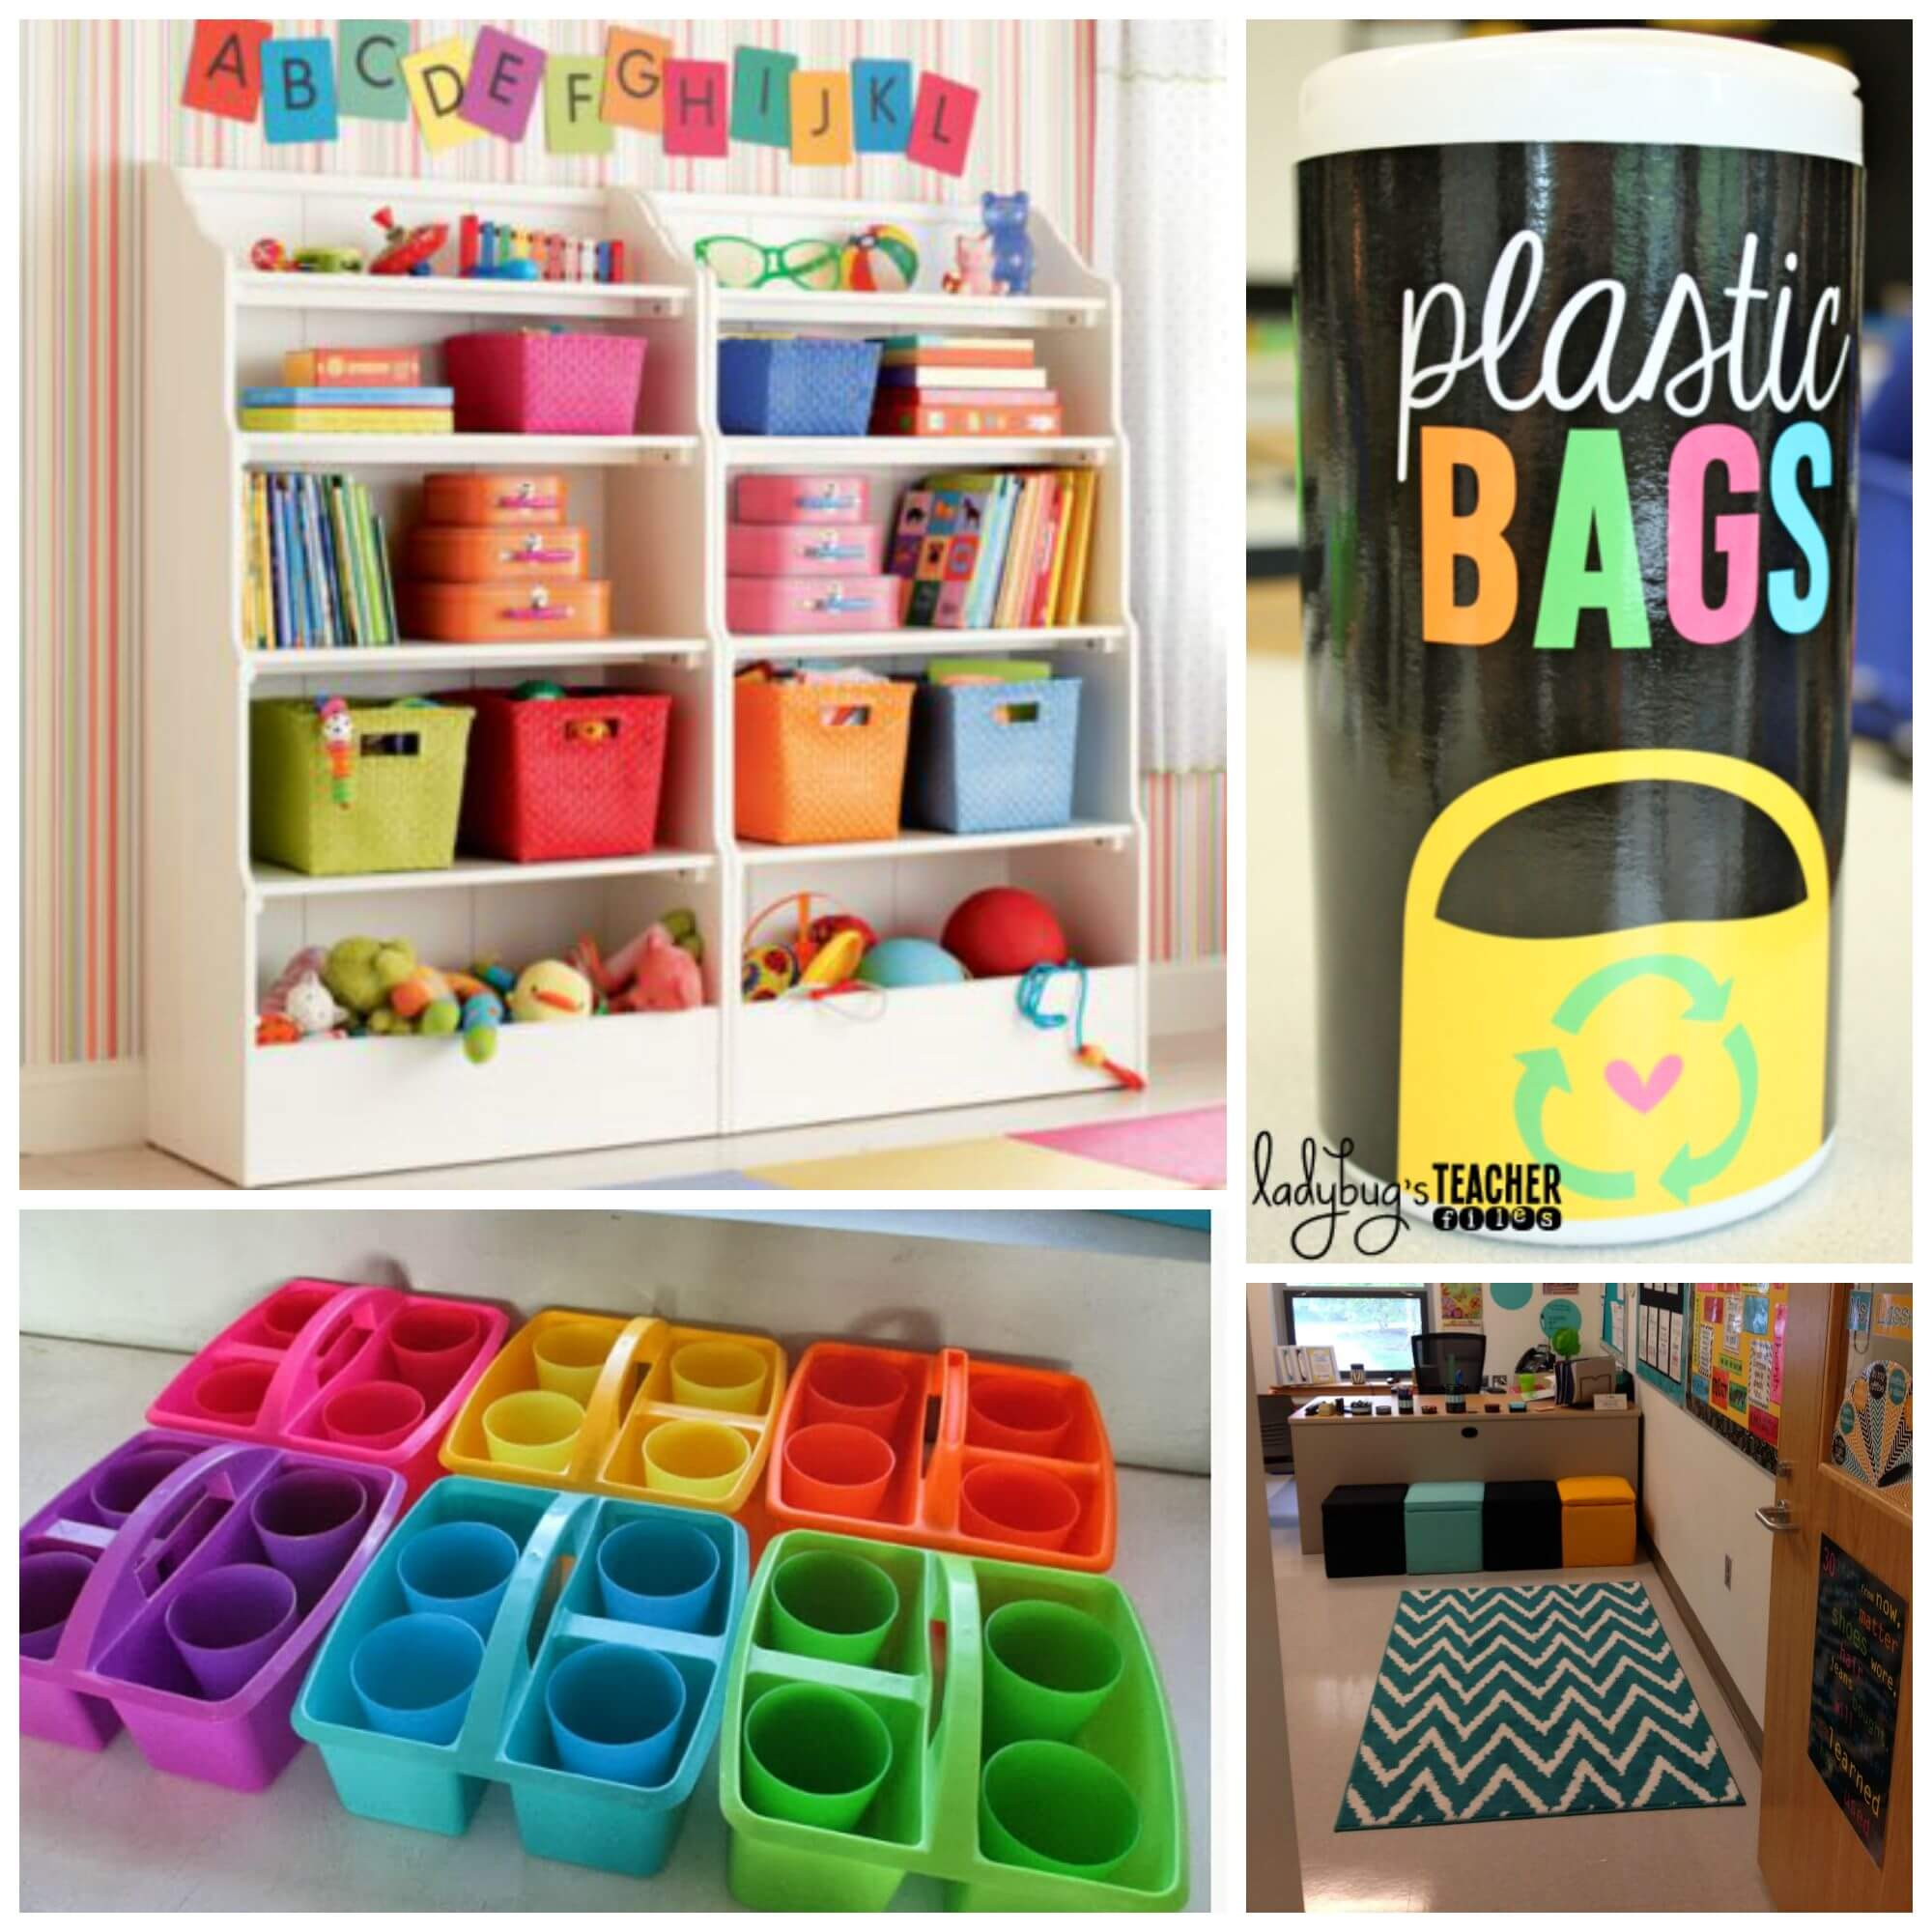 Classroom Ideas For Primary School ~ Inspiring classroom decoration ideas playdough to plato